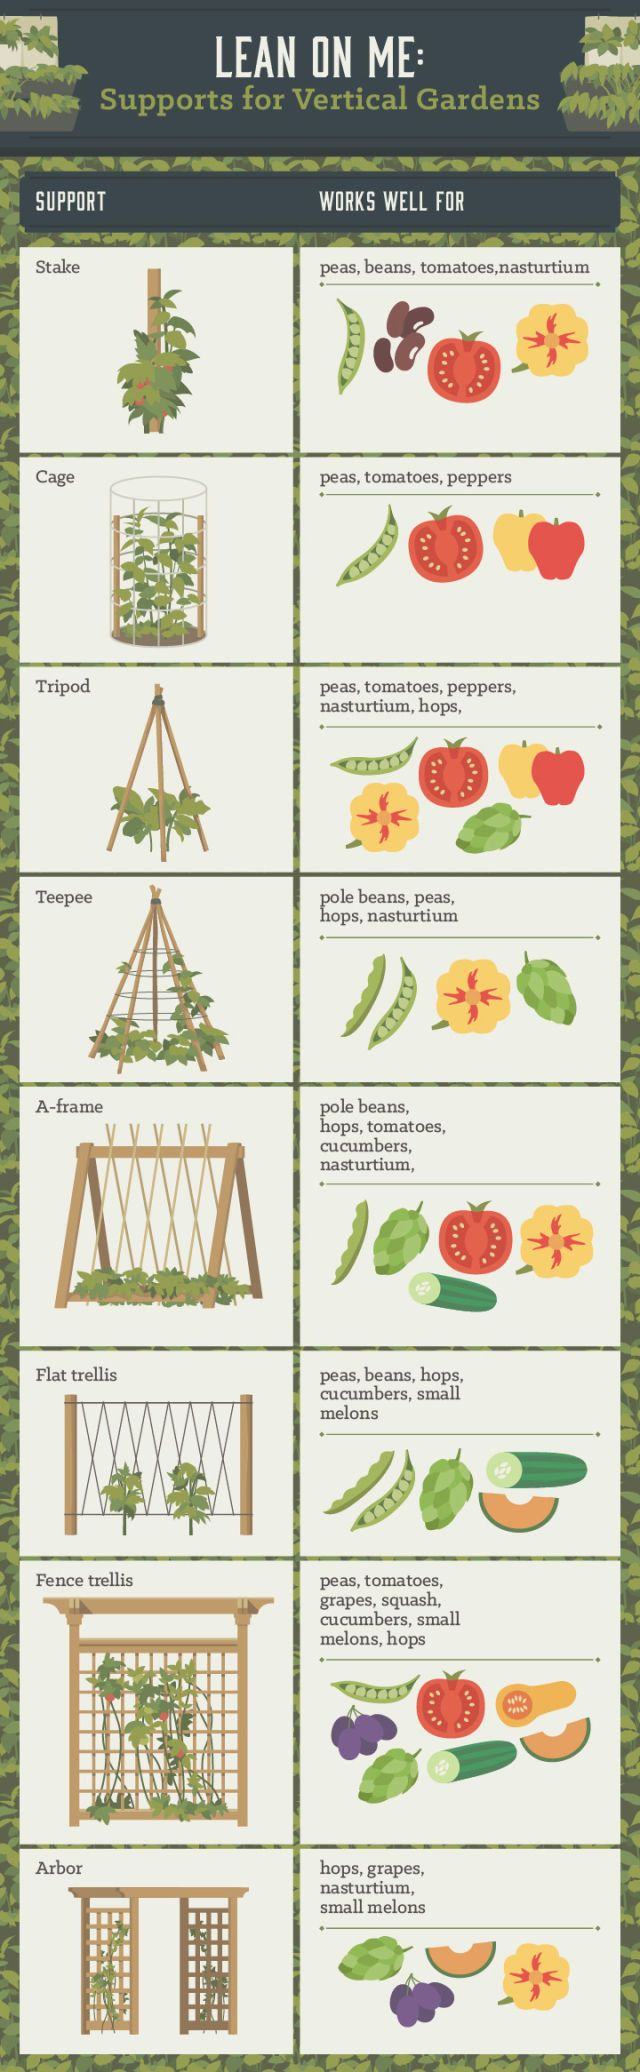 The Right Way to Grow a Vertical Garden